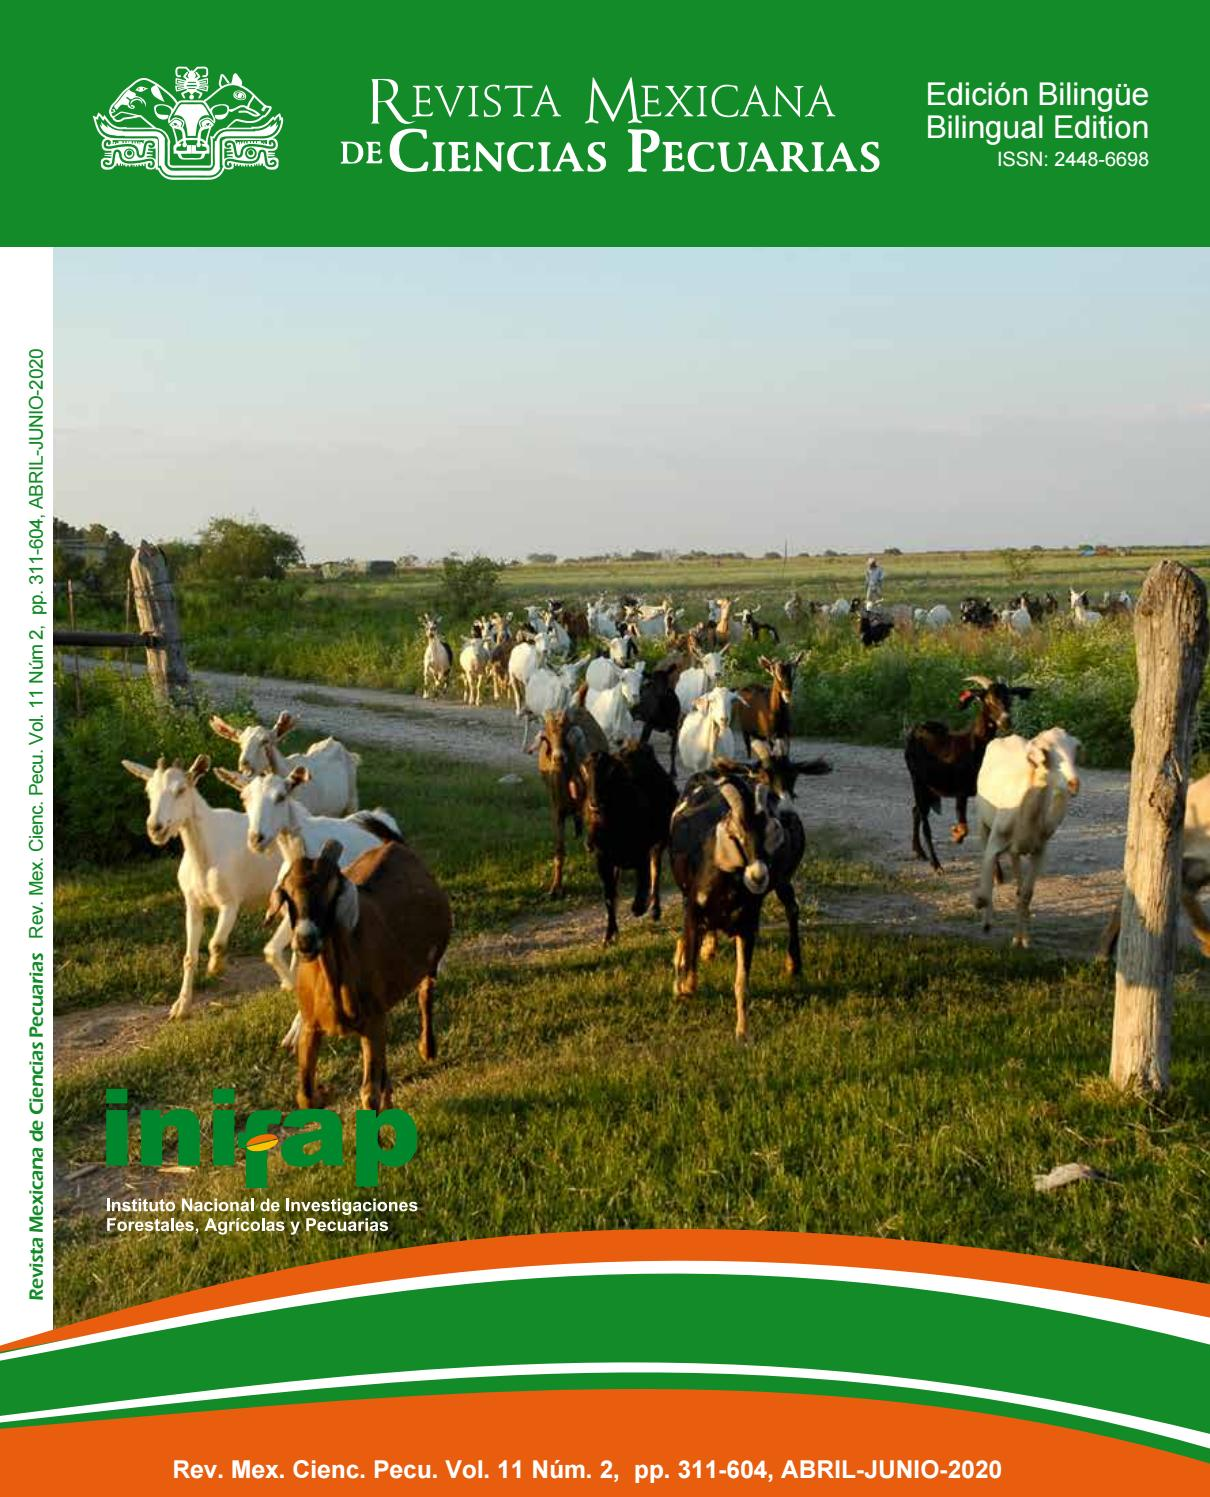 Rmcp Vol 11 Num 2 2020 April June English Version By Revista Mexicana De Ciencias Pecuarias Issuu